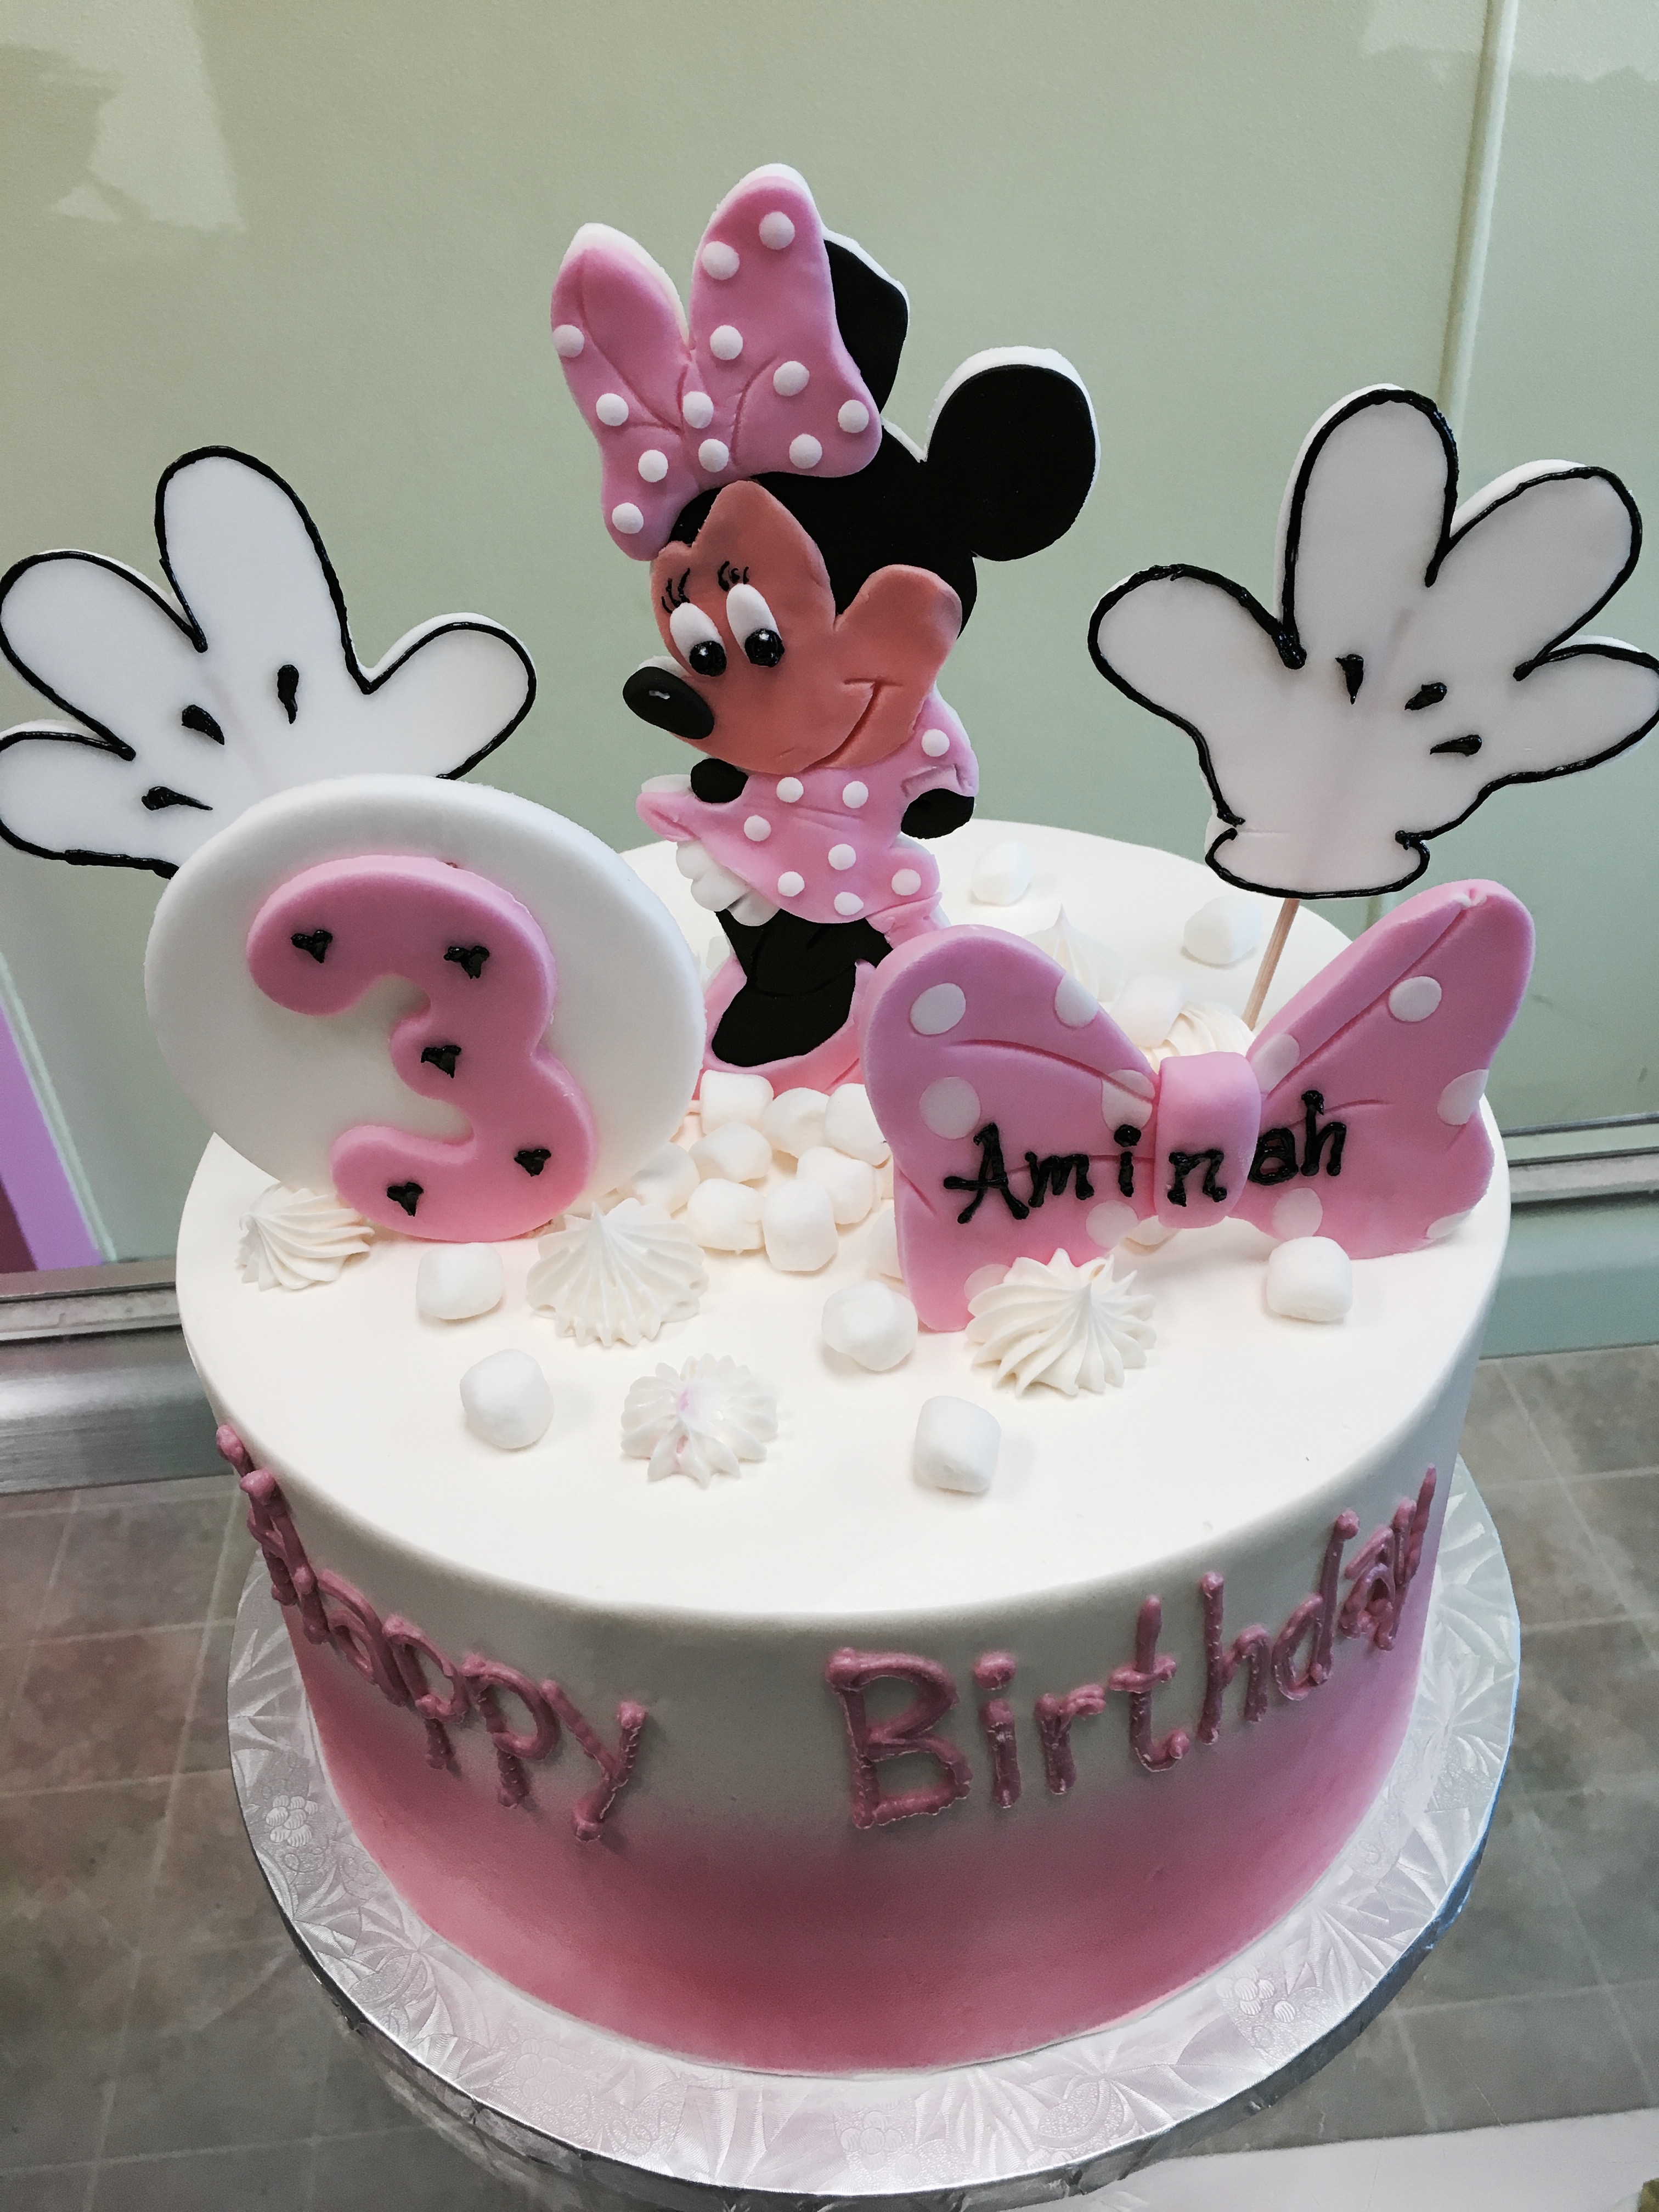 2983, 3rd birthday, third birthday, minnie mouse, disney, ears, hands, bow, pink, white,